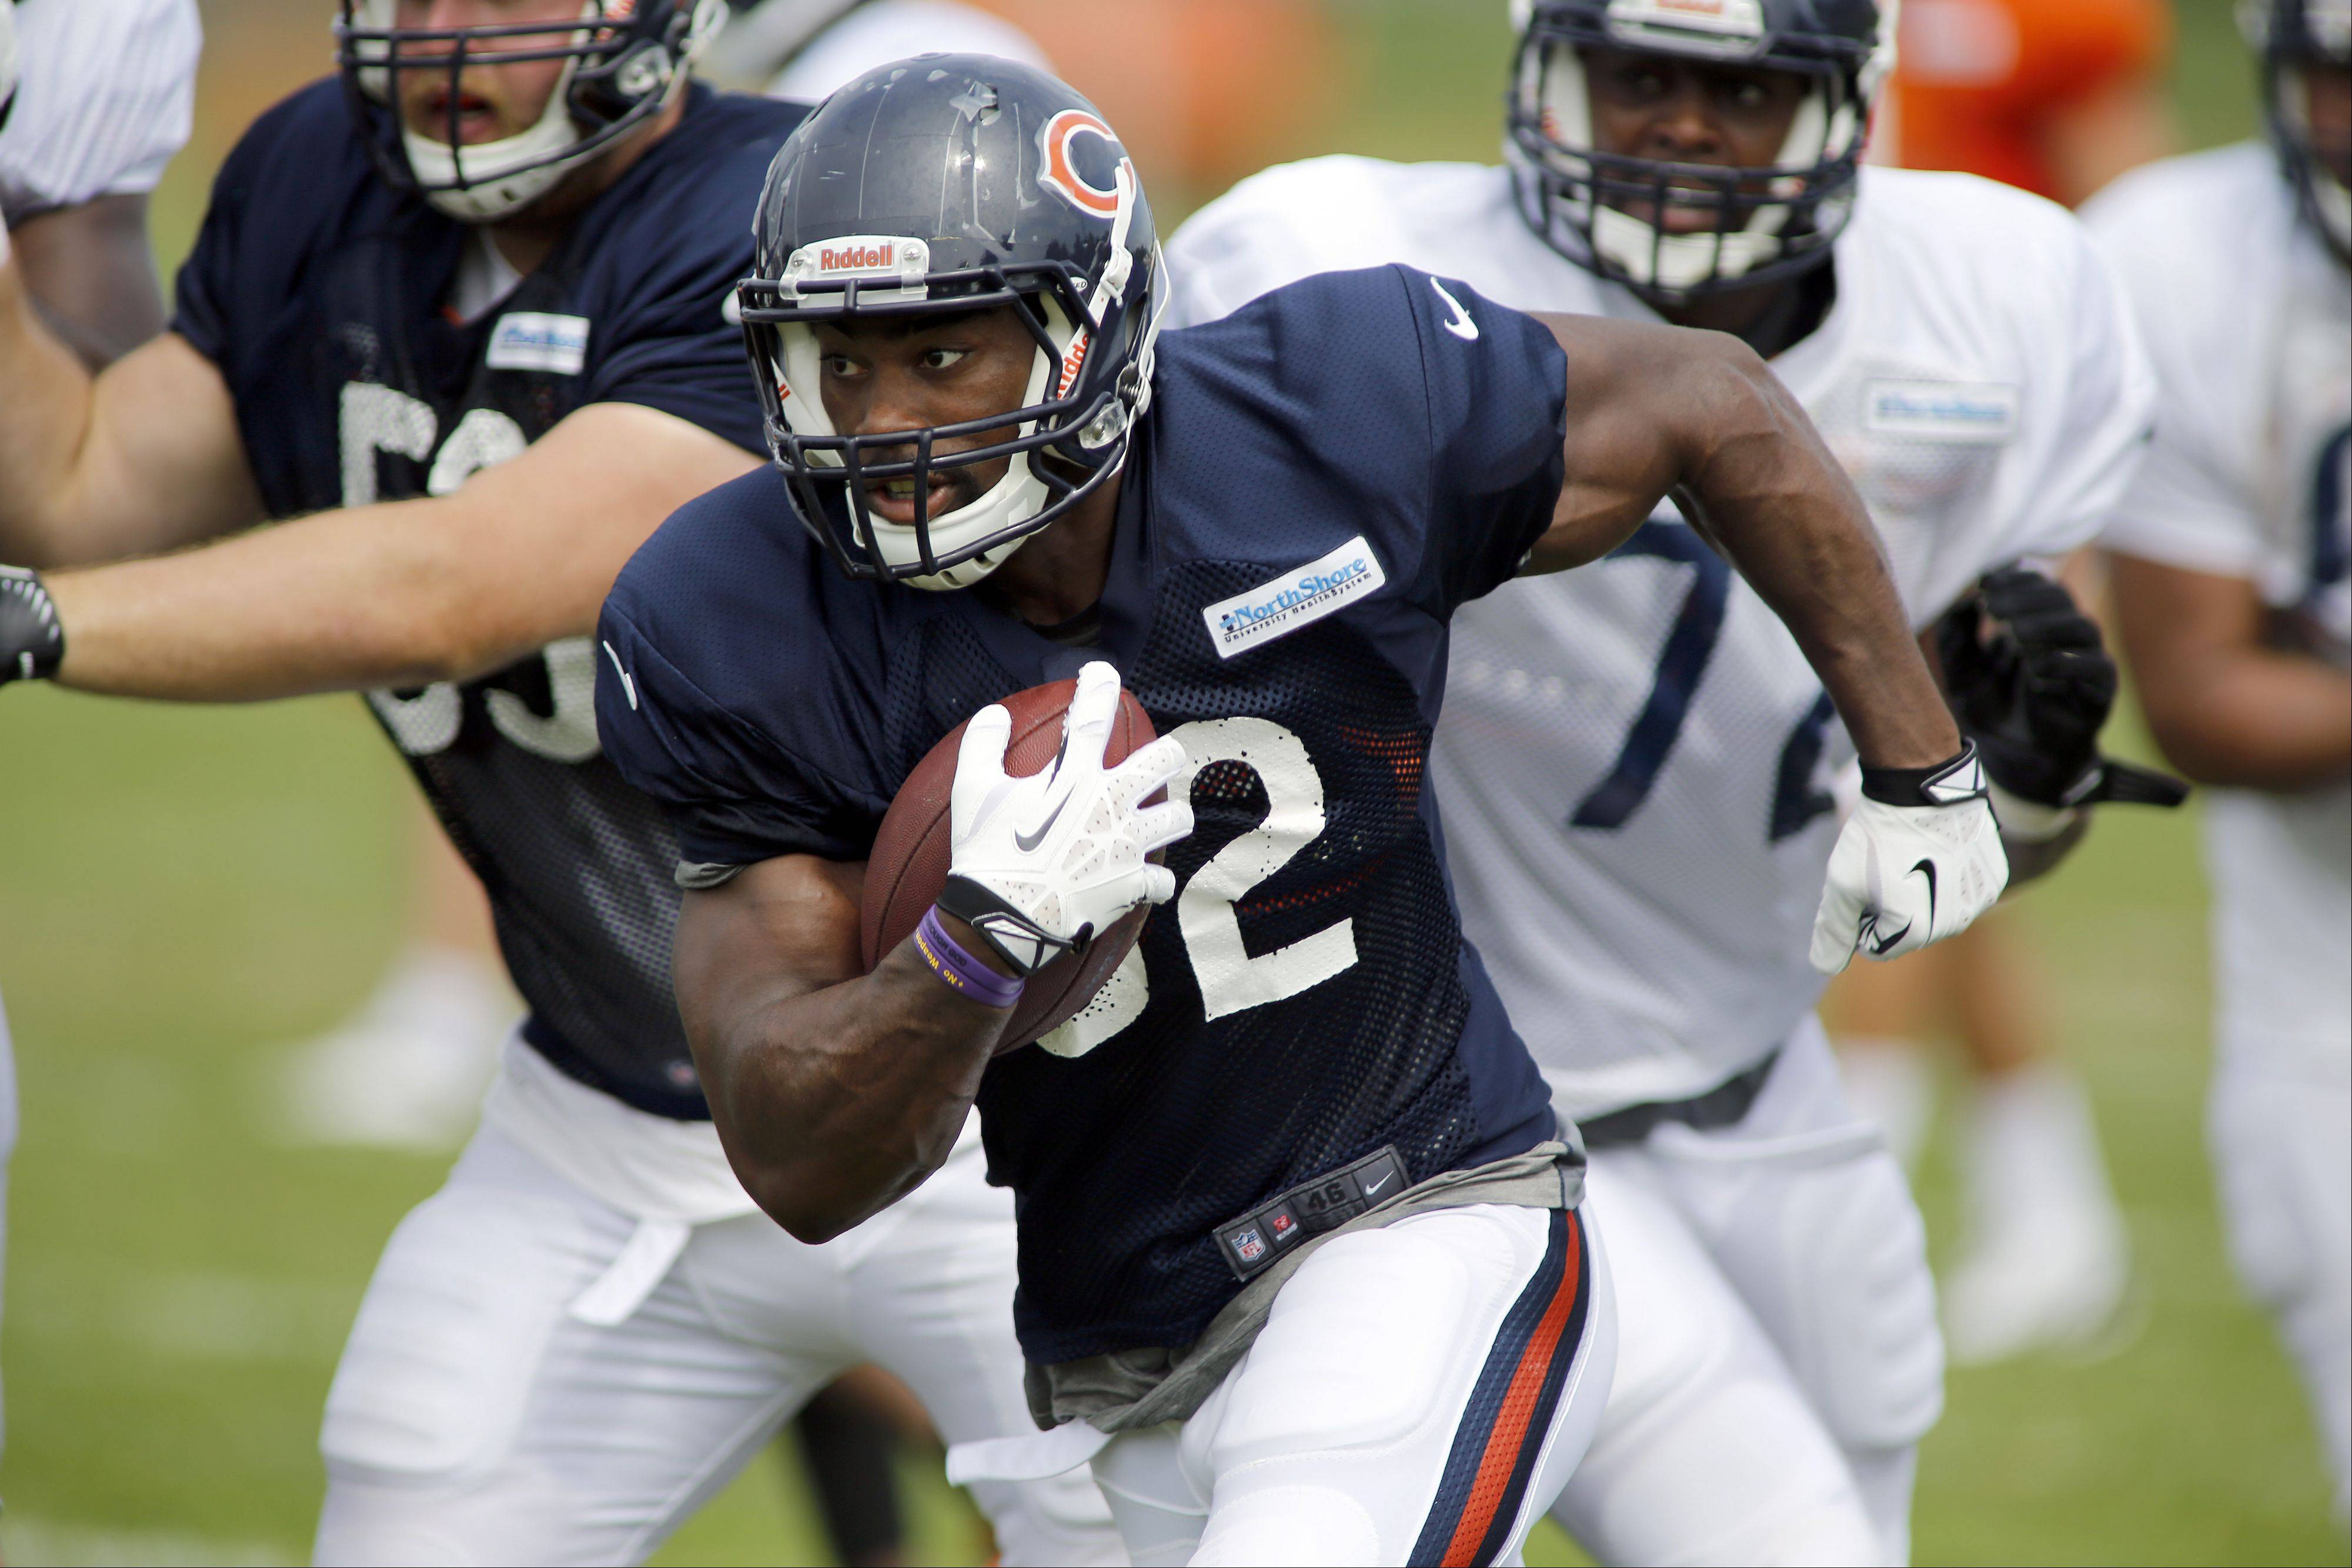 Brian Hill/bhill@dailyherald.com Rookie running back Michael Ford has impressed this preseason and could go a long way in securing a roster spot with a big game Thursday in the Bears' final preseason game.